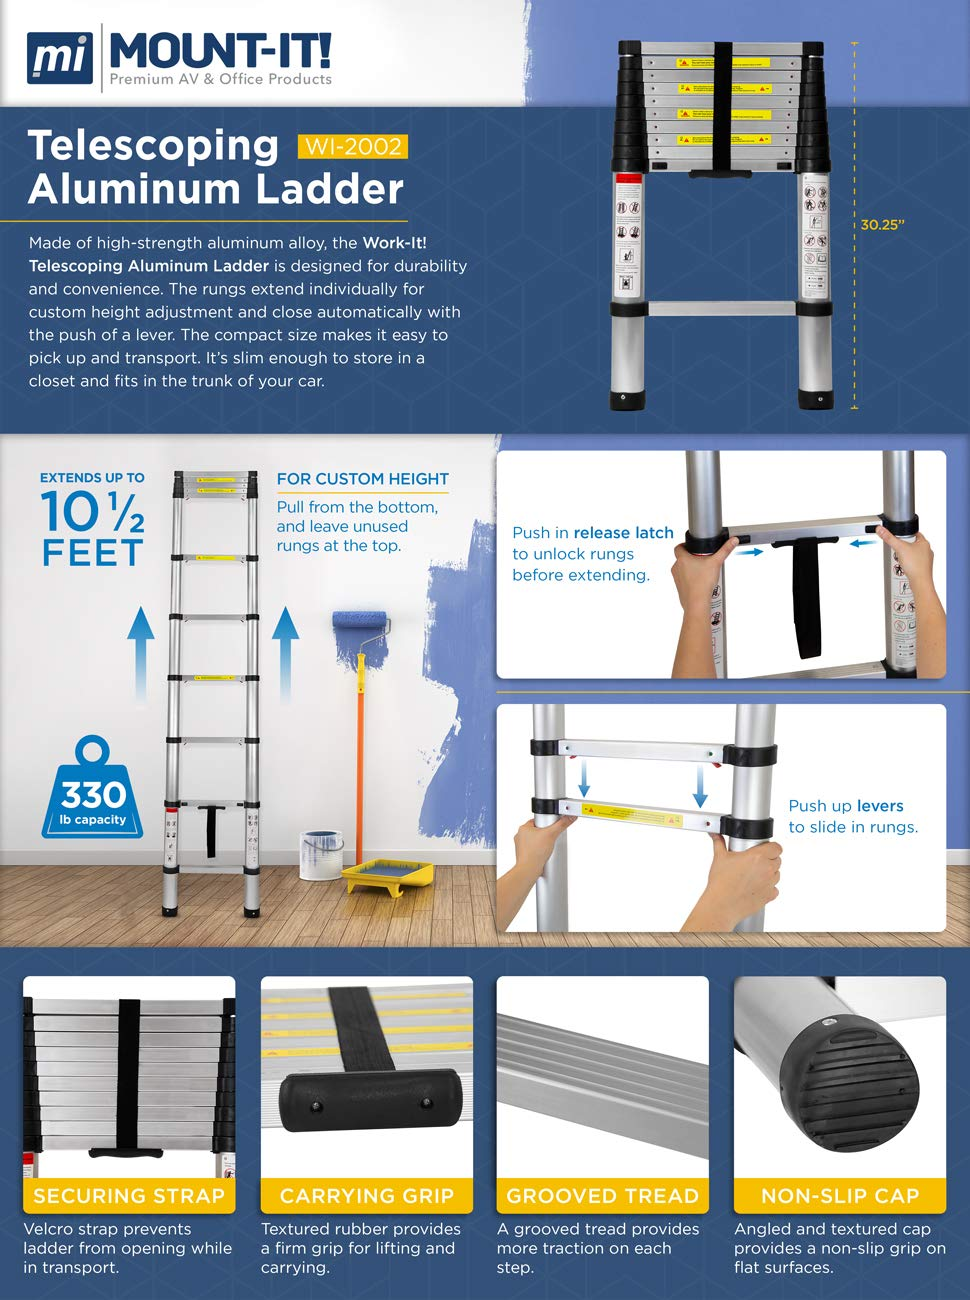 Work-It! Telescoping Ladder 10.5 Ft - Aluminum Extension Ladder with Soft Close Spring Function, EN131 Certified 330 lbs Capacity by Work-It! (Image #2)